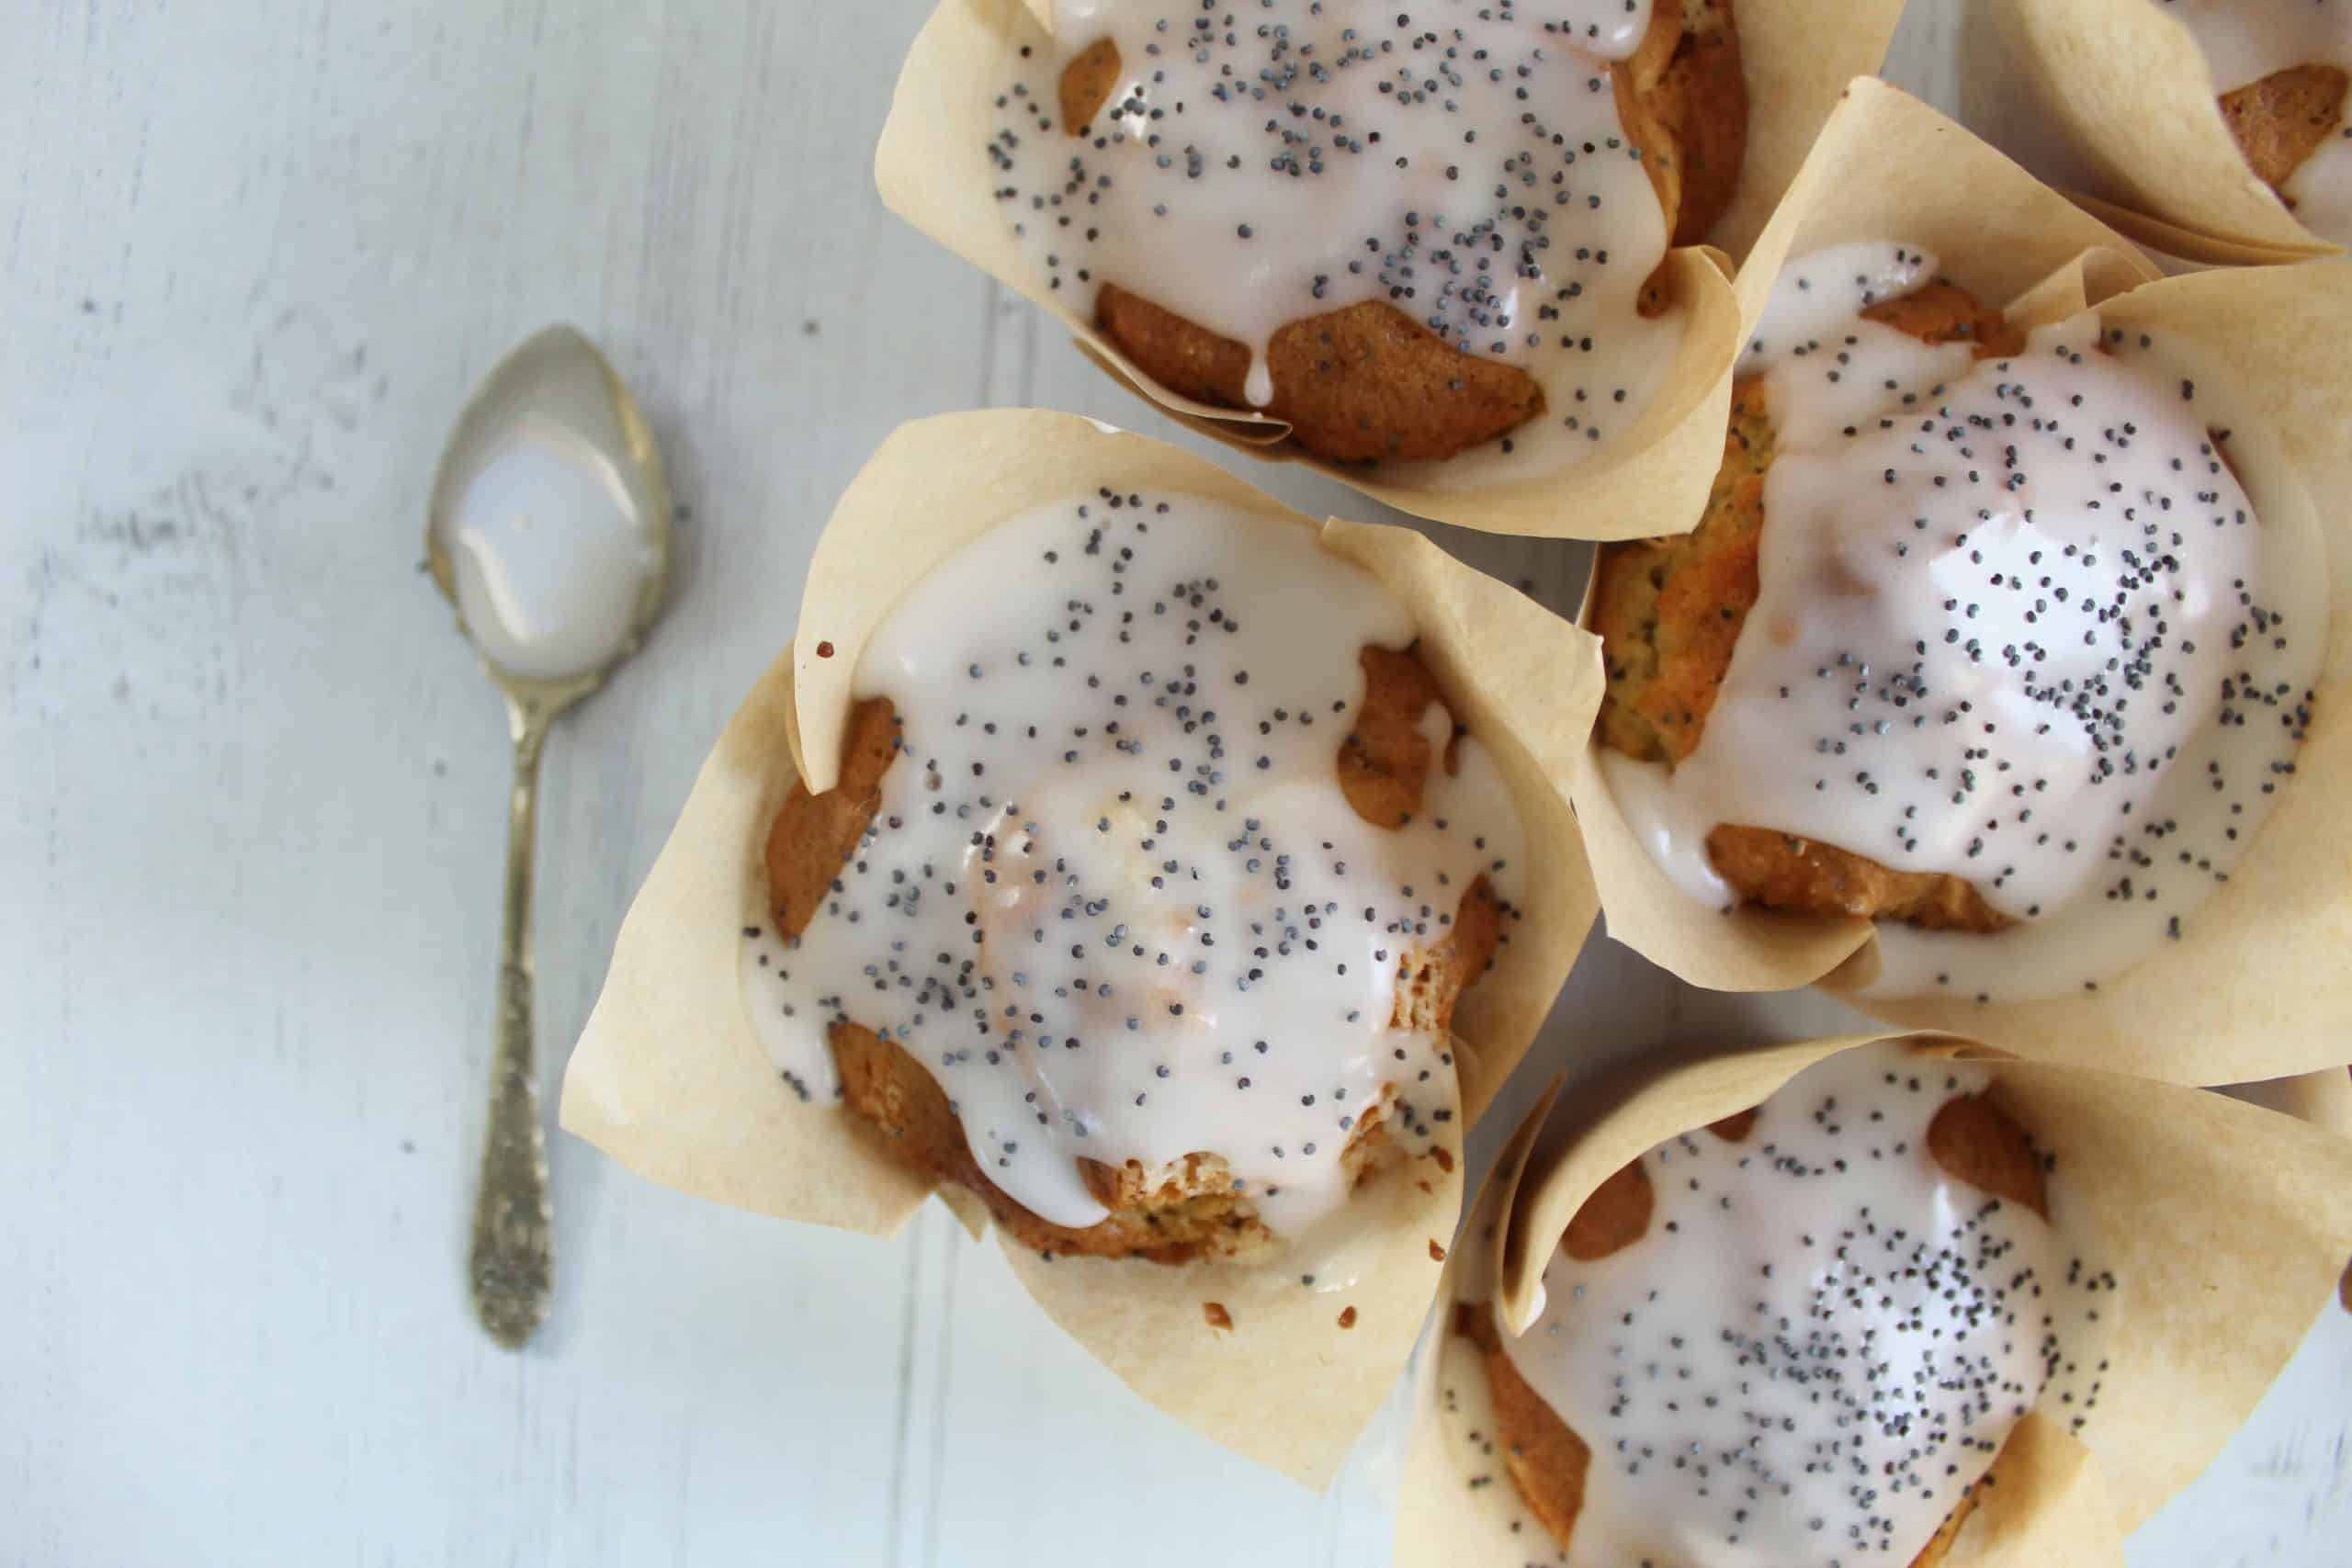 GLUTEN FREE LEMON AND POPPYSEED MUFFINS 70